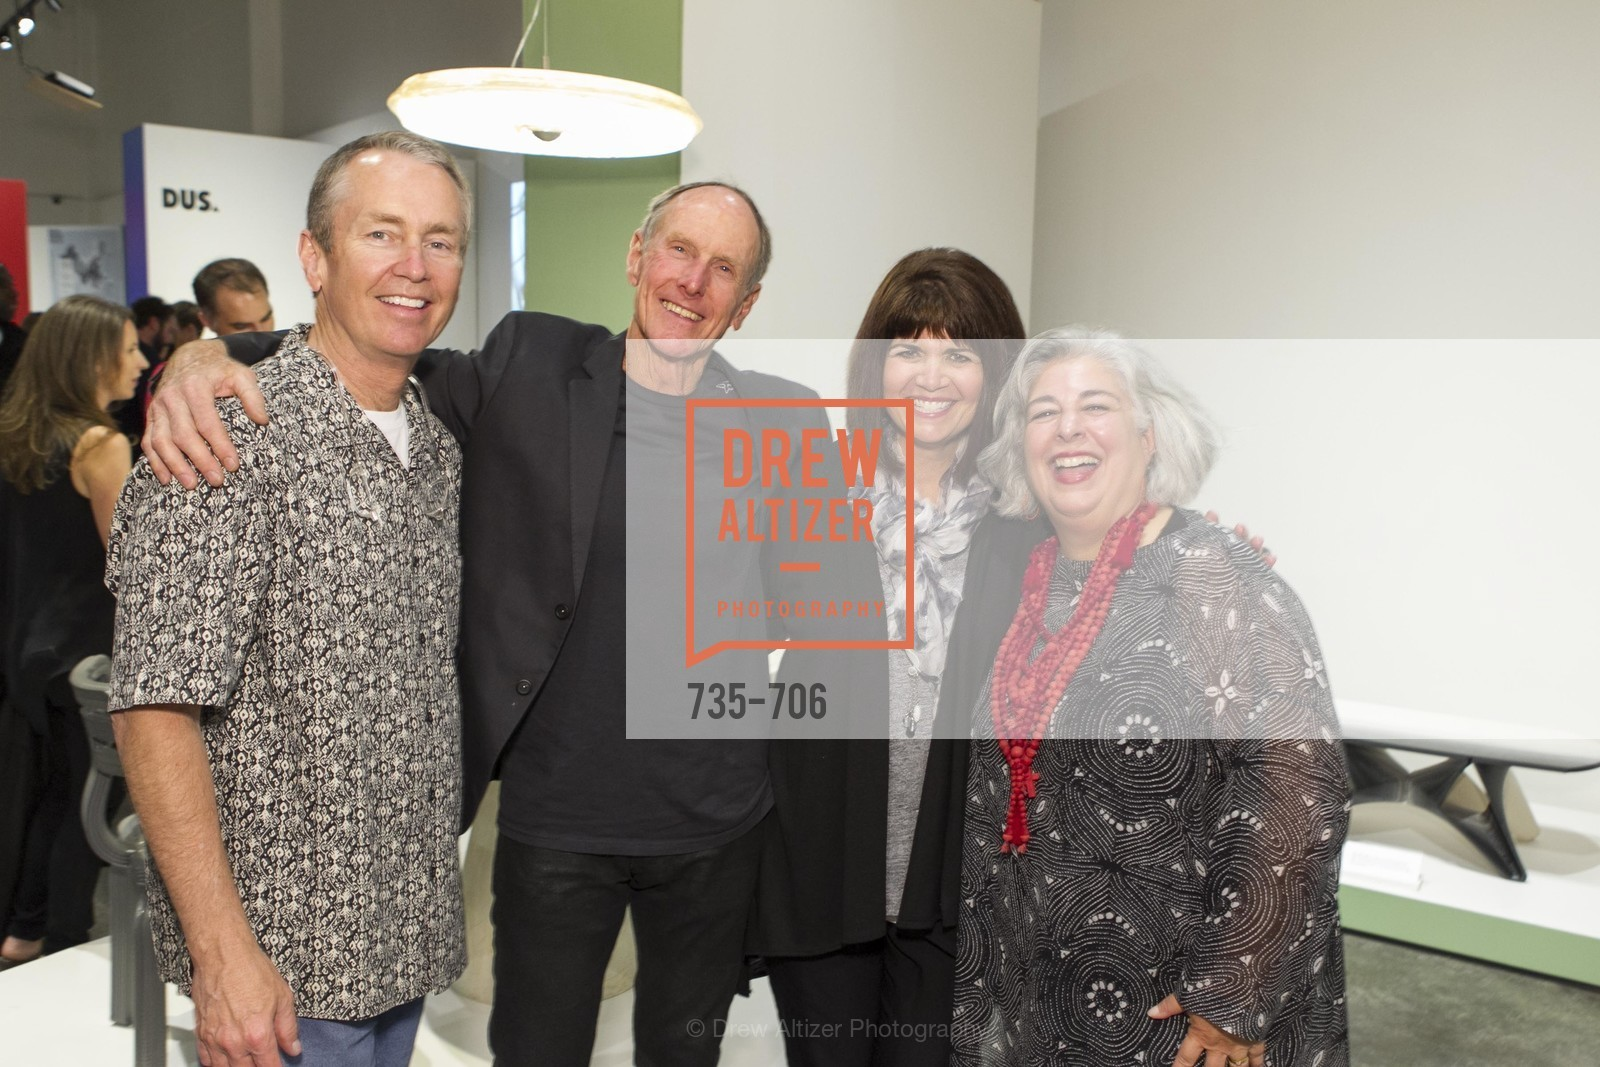 Andy Astor, JoAnn Edwards, Exhibit Opening at the MUSEUM OF CRAFT AND DESIGN - Hands Off: New Dutch Design at the Confluence of Technology & Craft, US, May 8th, 2015,Drew Altizer, Drew Altizer Photography, full-service agency, private events, San Francisco photographer, photographer california